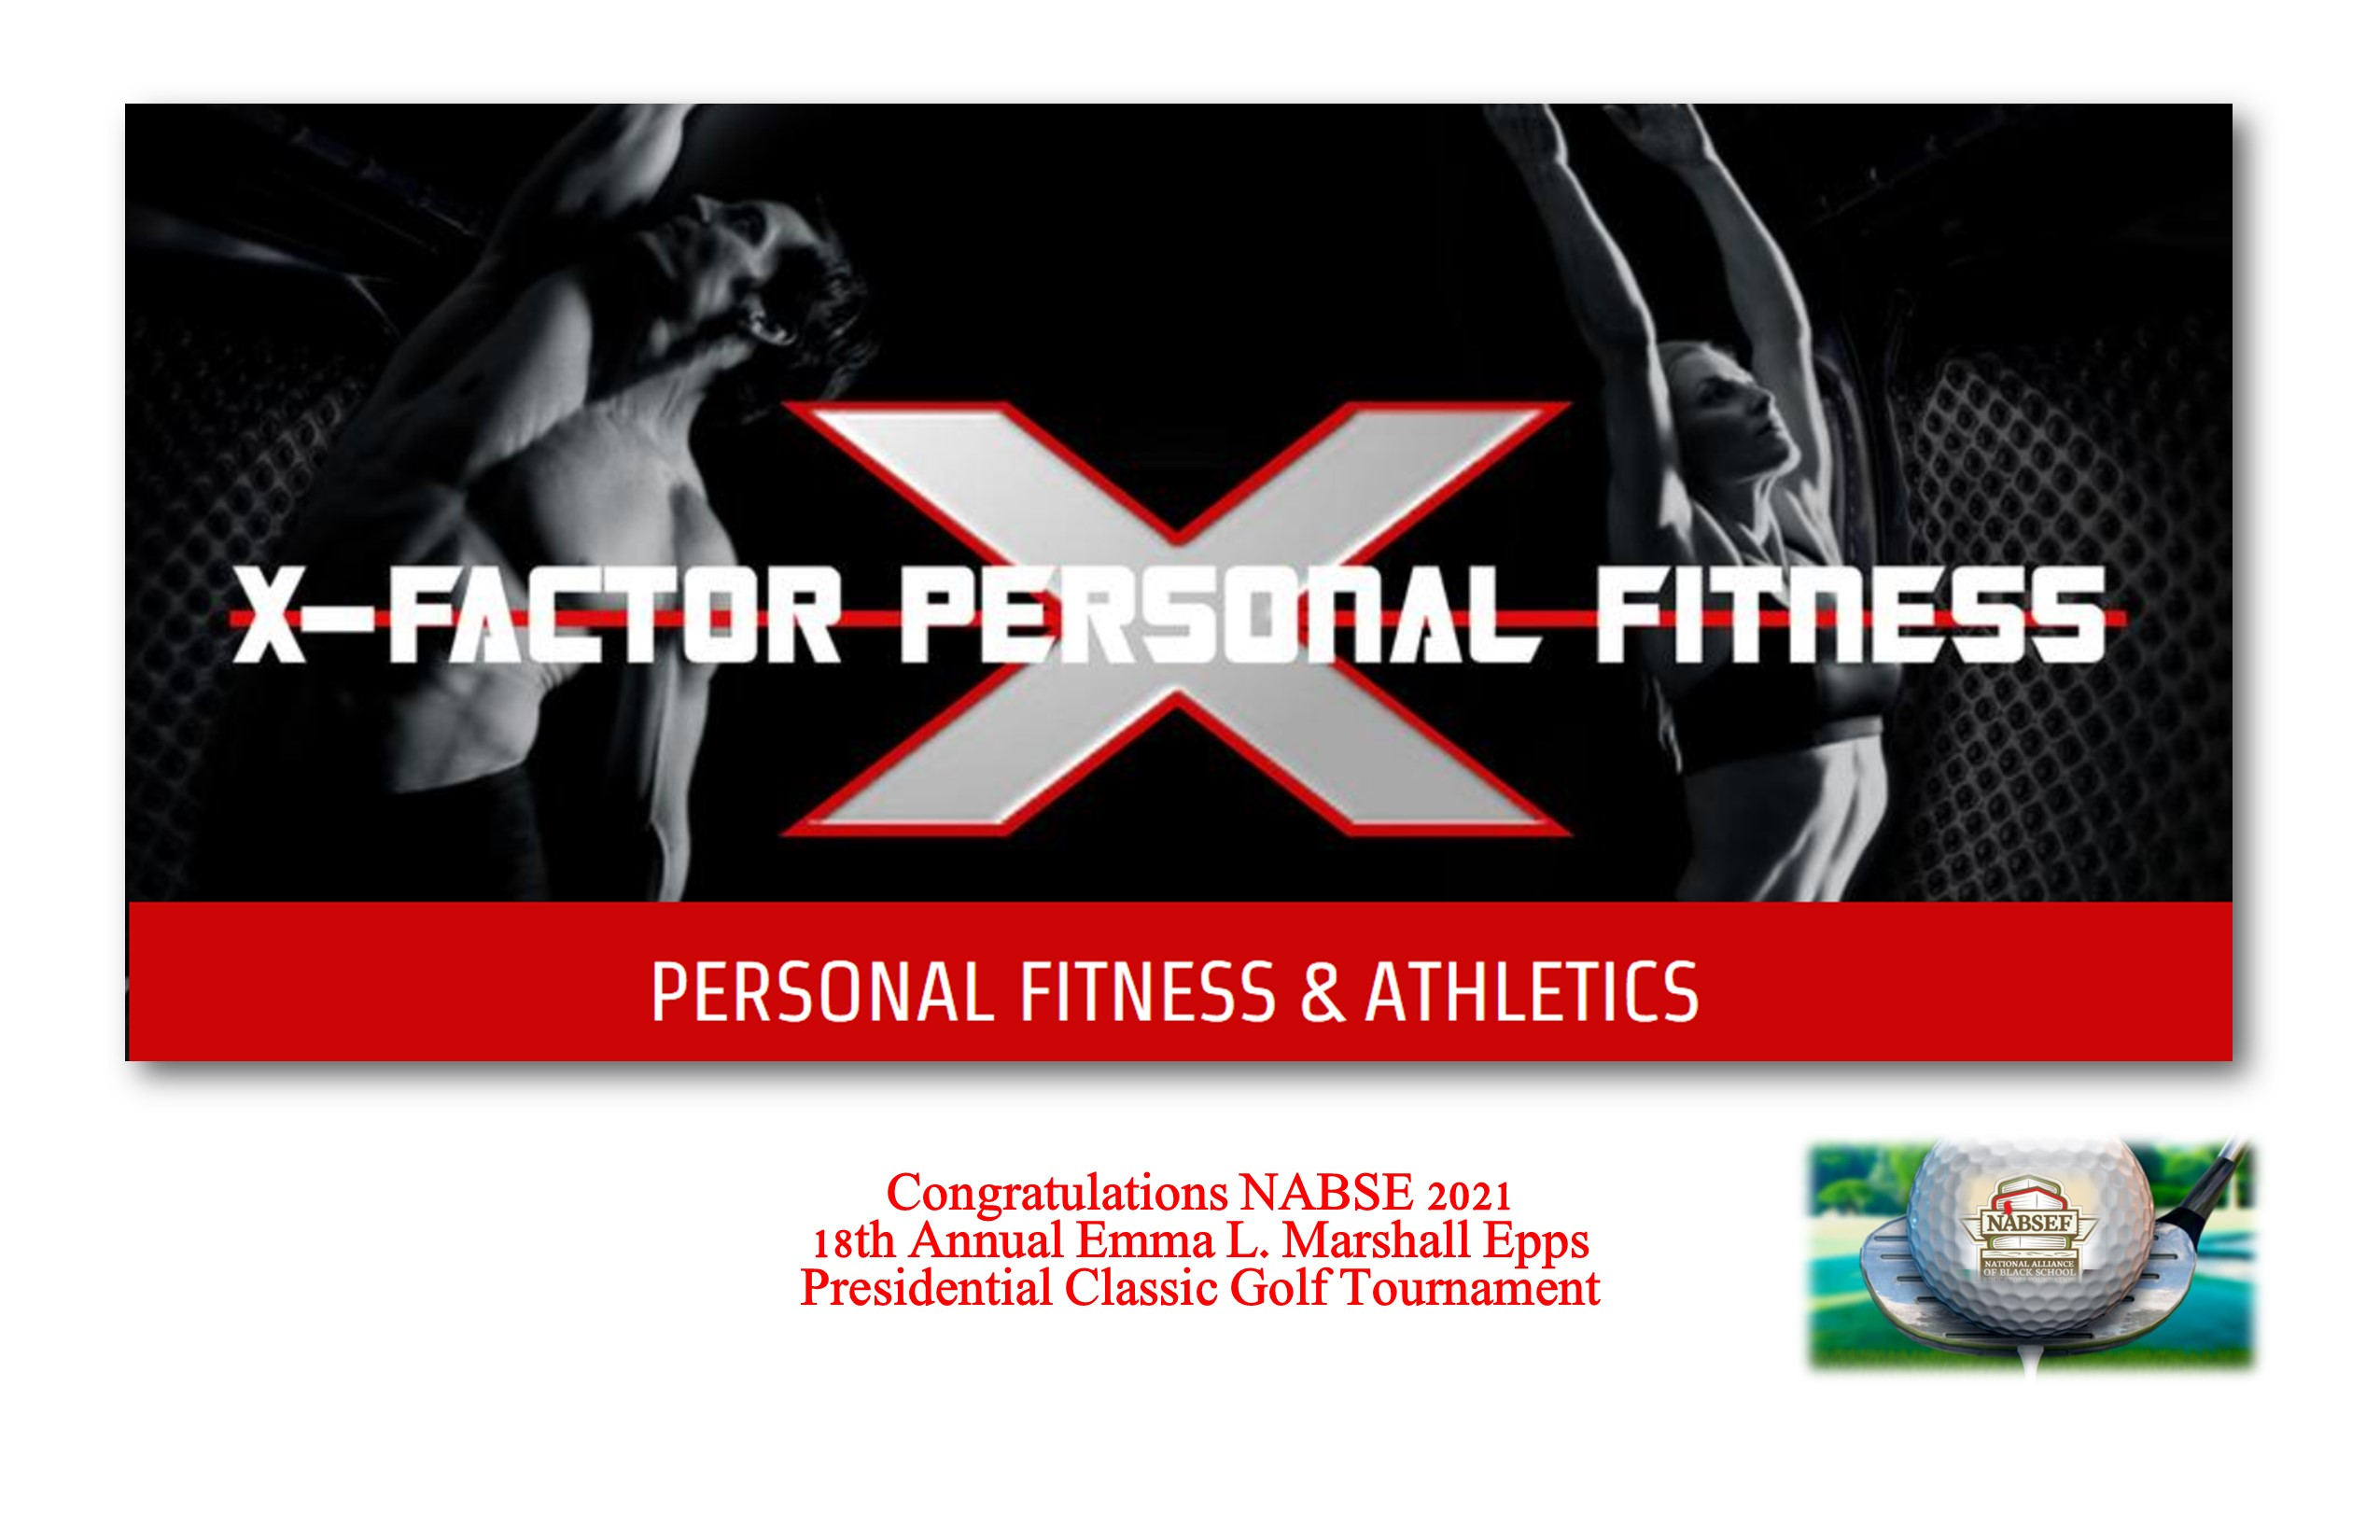 X Factor Personal Fitness & Athletics